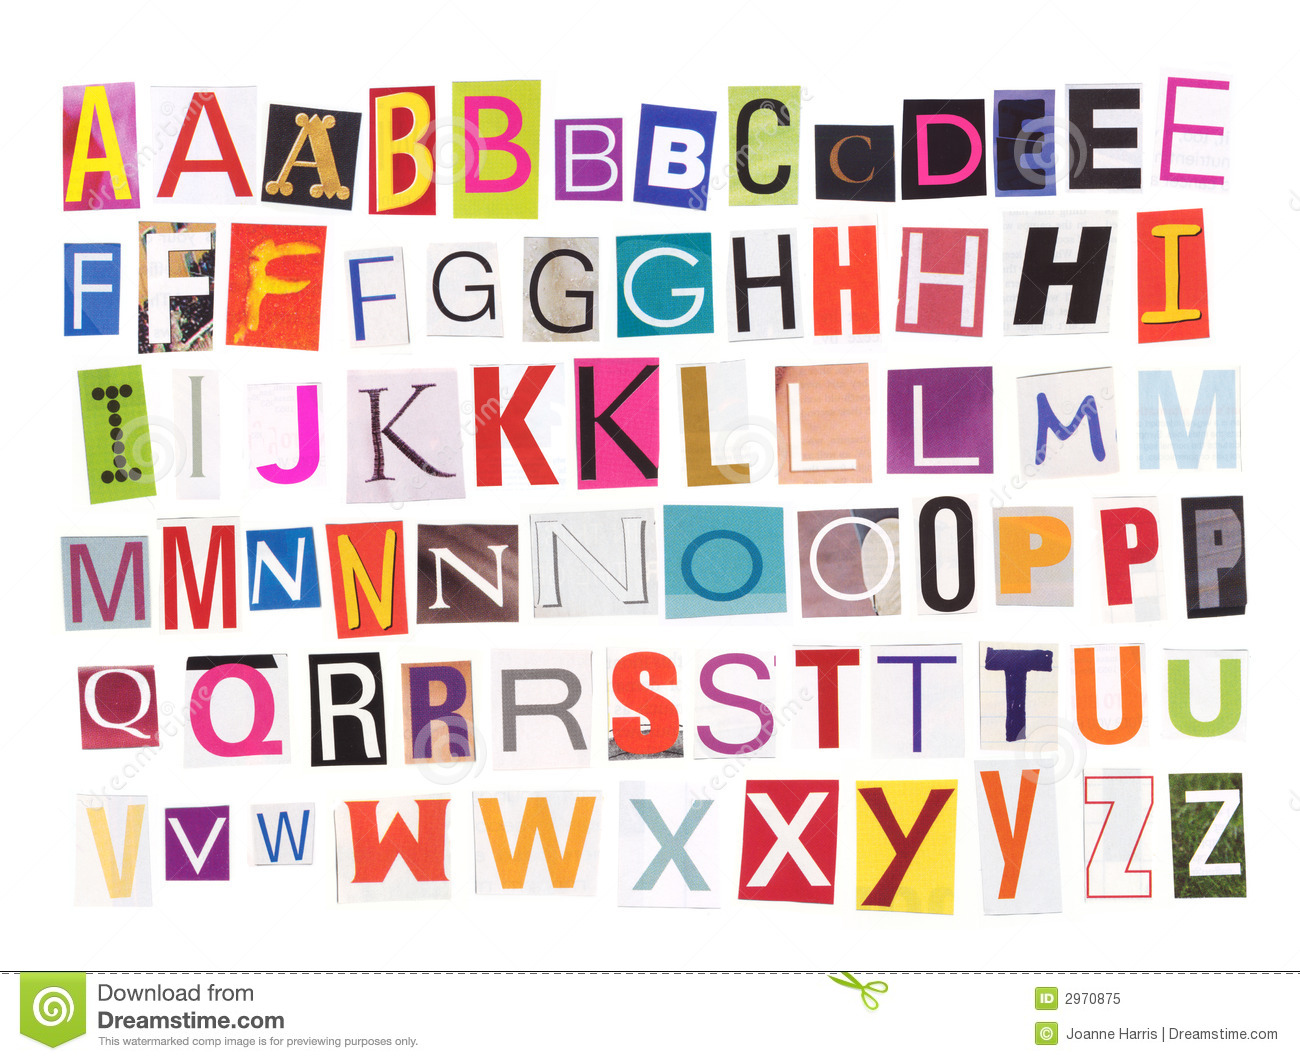 Alphabet E letters to print and cut out free - Alphabet Magazine Cutouts